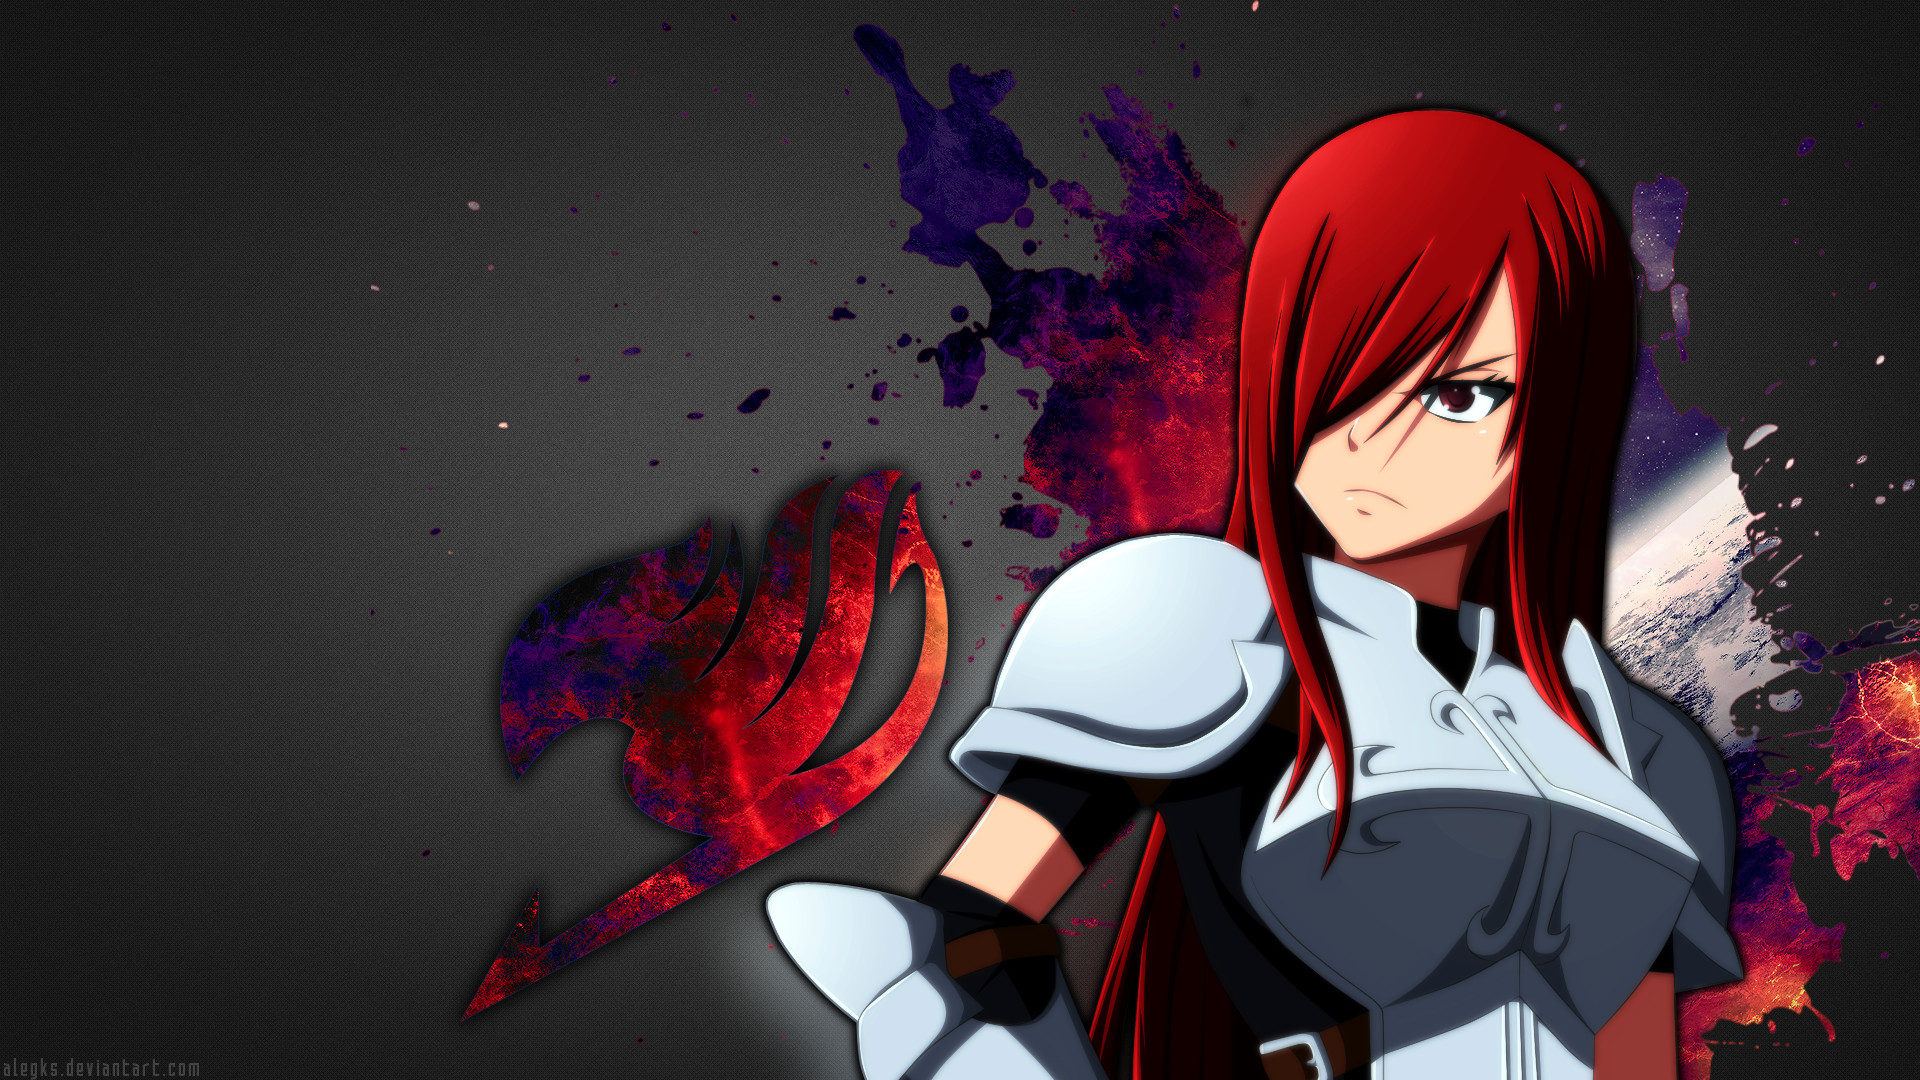 1920x1080 Fairy Tail Erza Wallpaper High Definition - Bhstorm.com